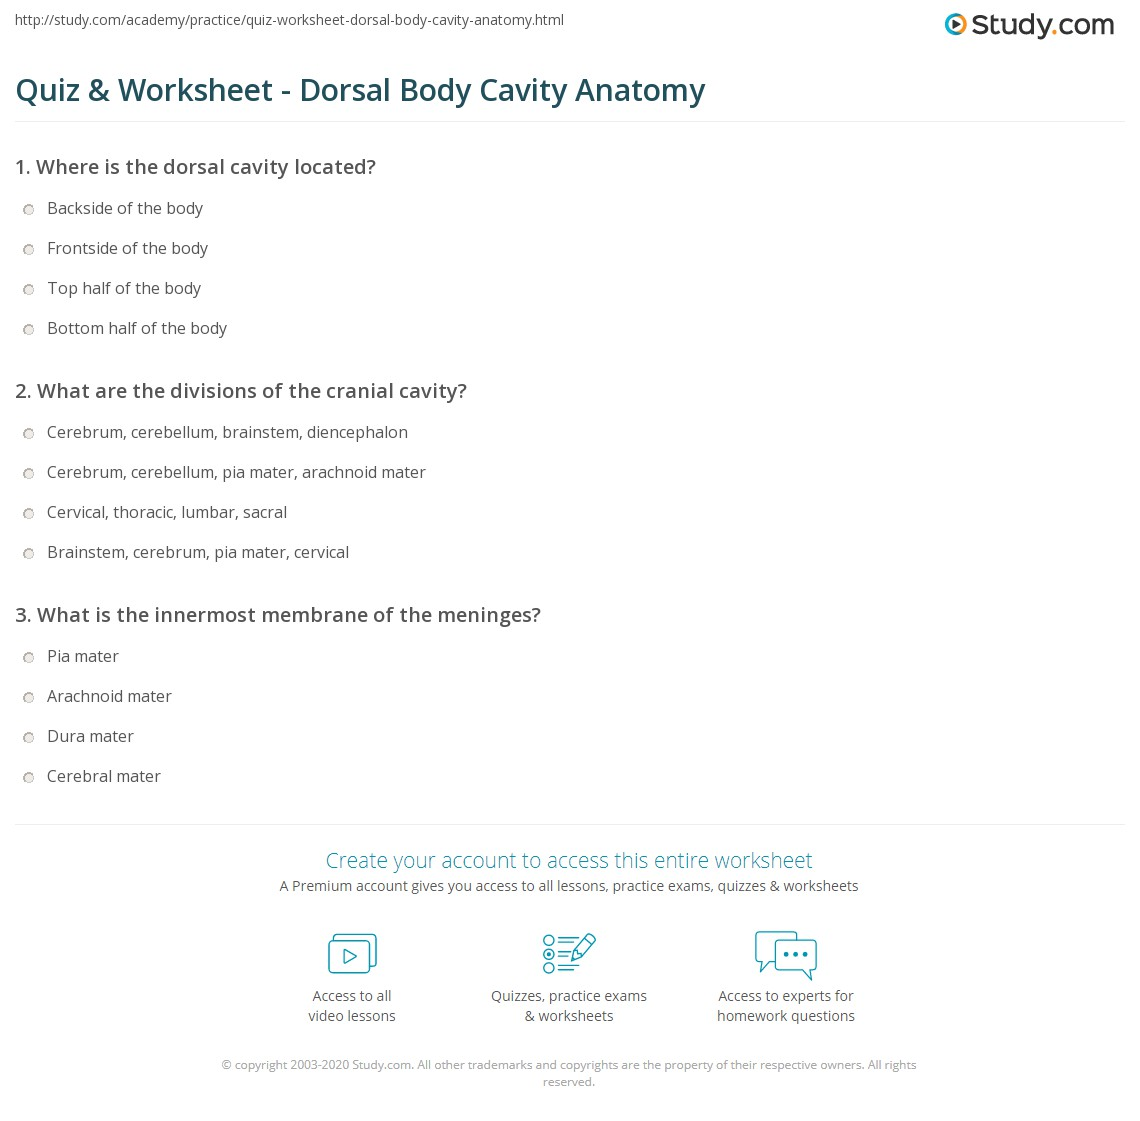 Quiz & Worksheet - Dorsal Body Cavity Anatomy | Study.com